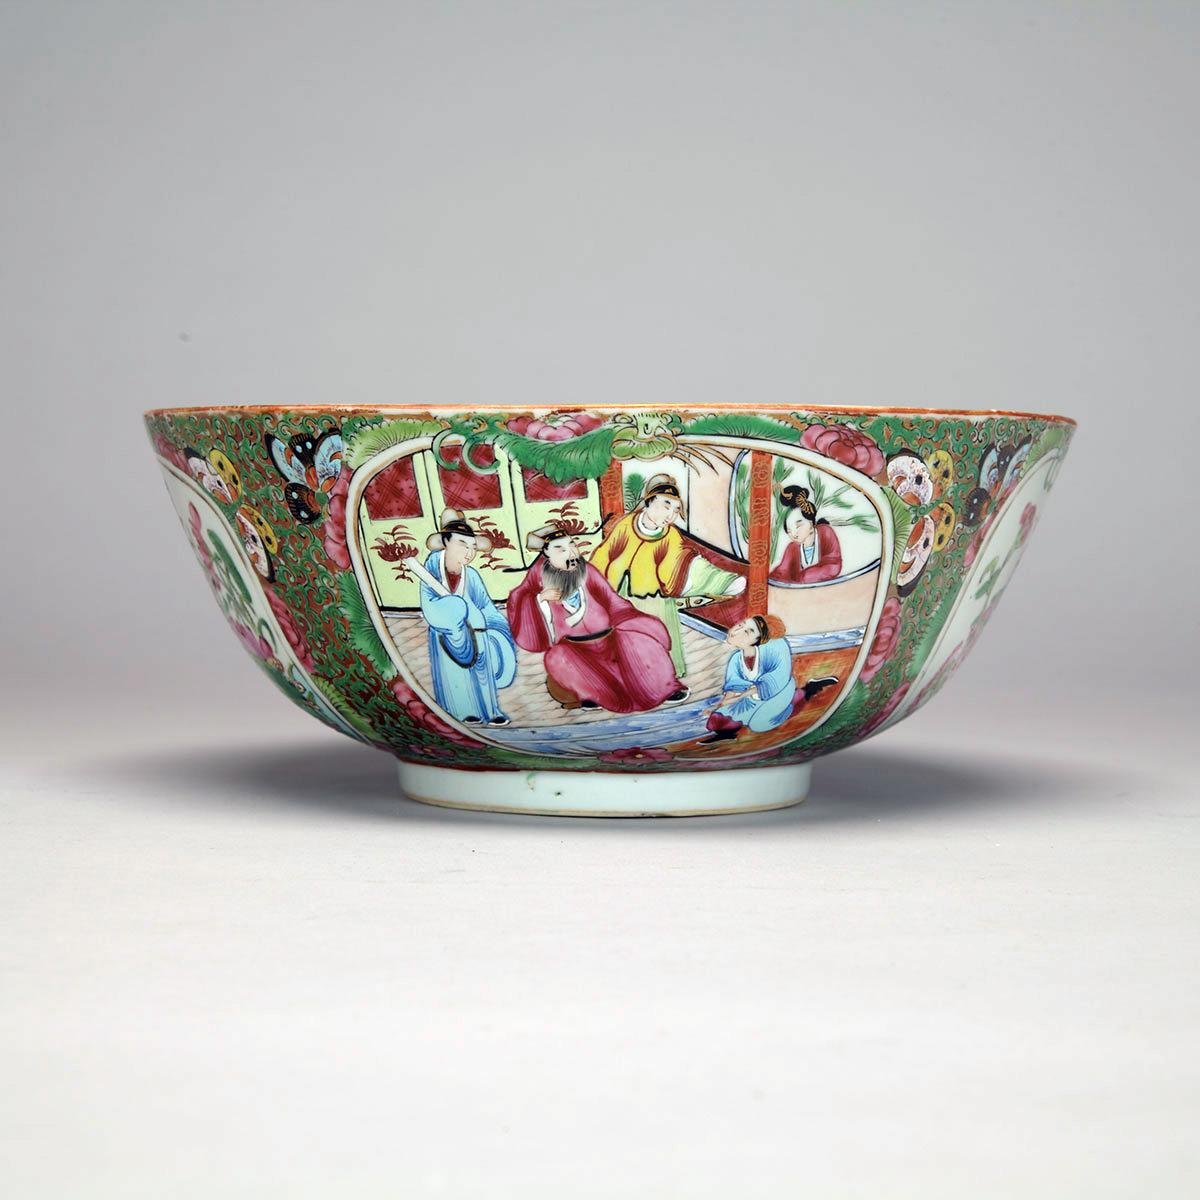 Export Canton Rose Punch Bowl, 19th Century